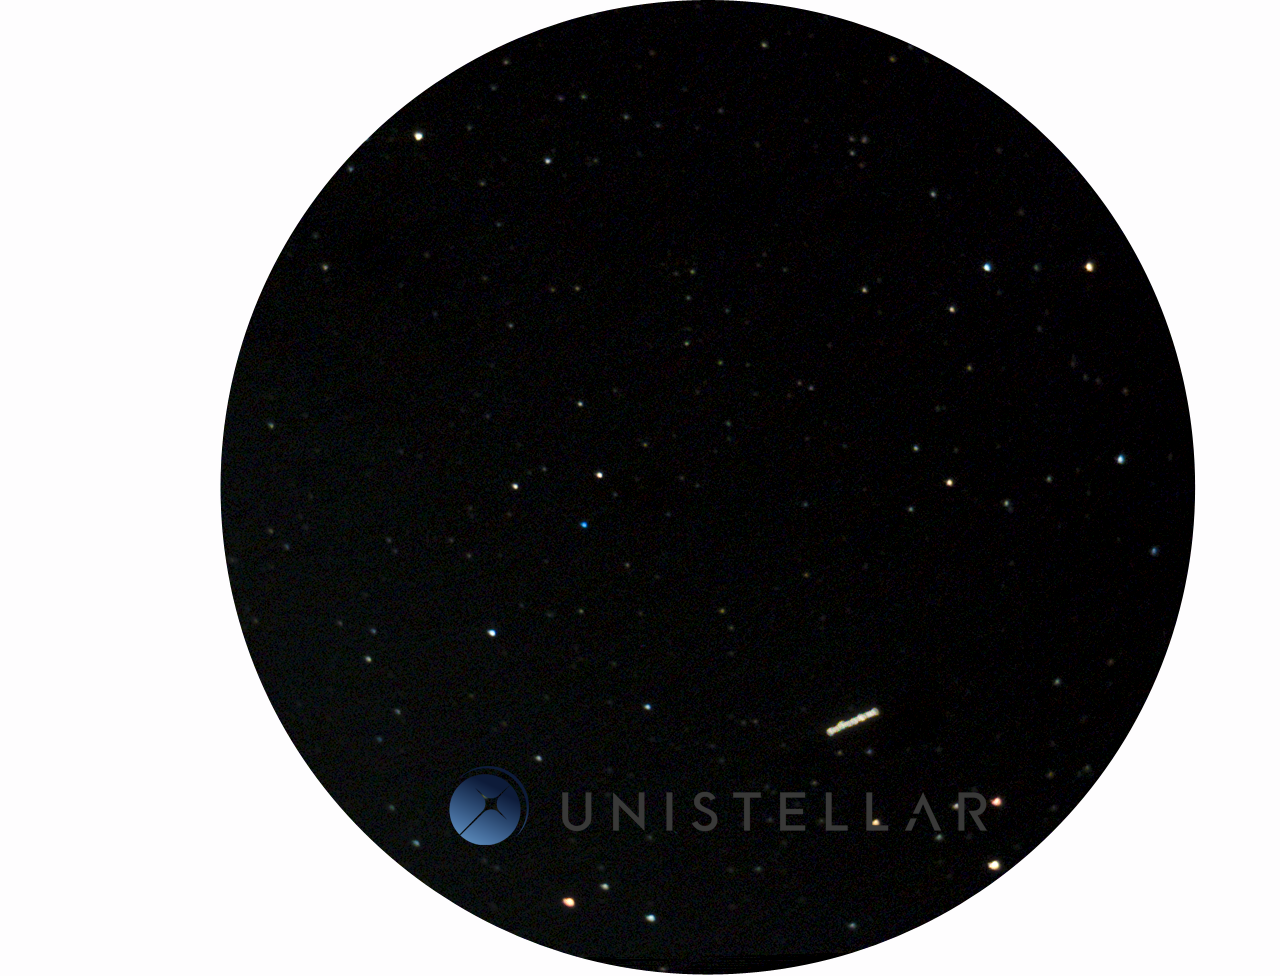 Three-min observation of the asteroid (3122) Florence seen in the eyepiece of the eVscope prototype. (Credit: Unistellar)